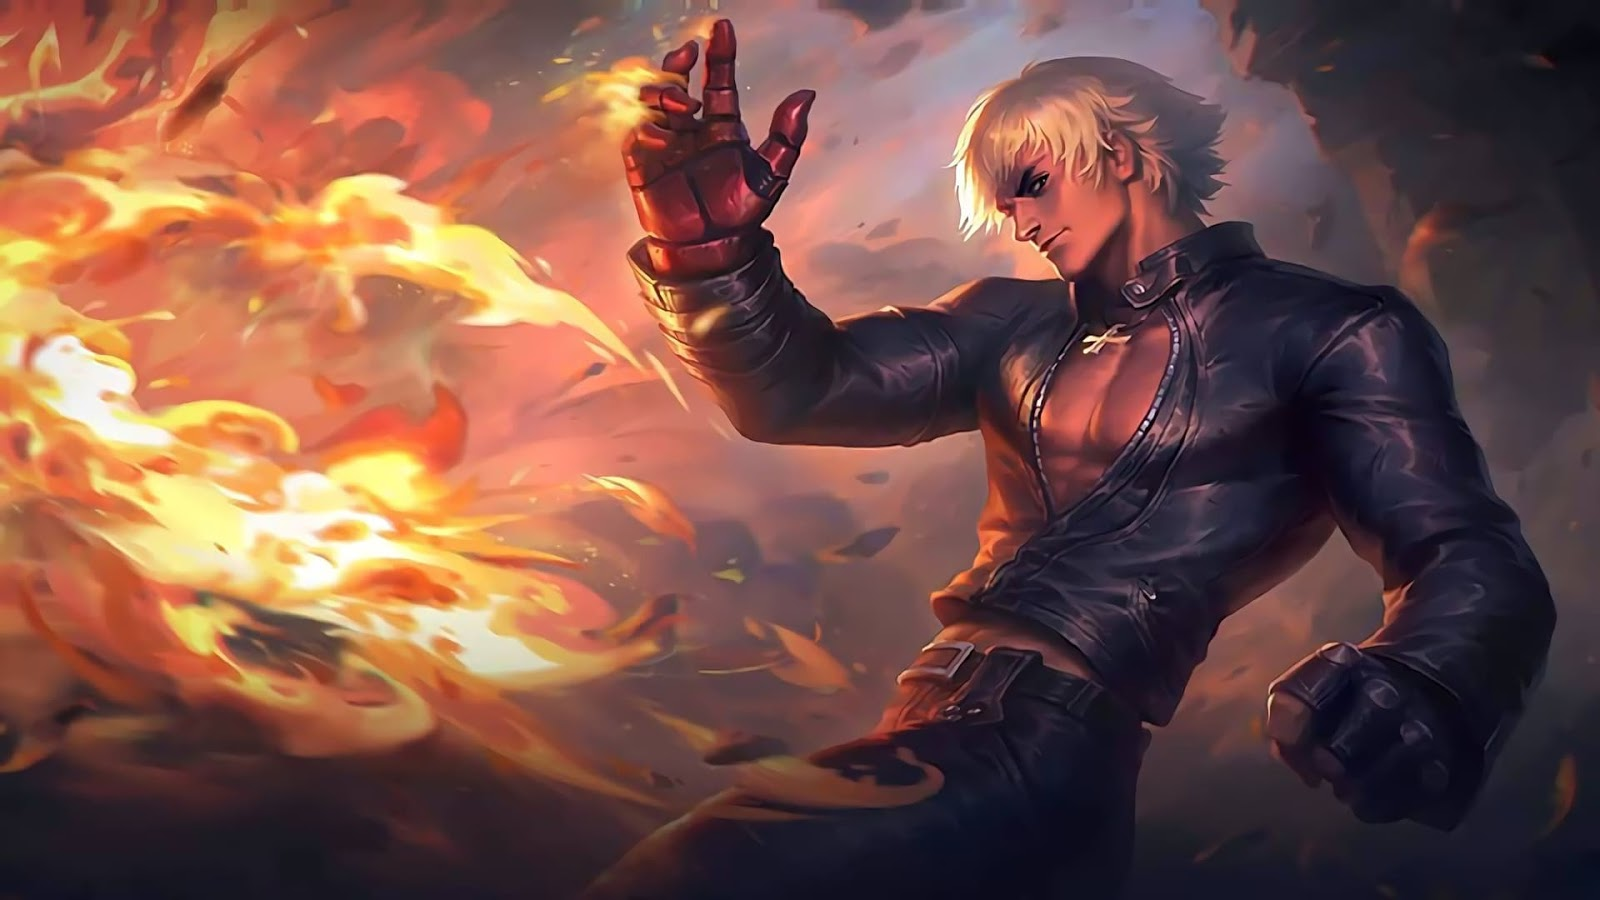 Wallpaper Gusion K' KOF Skin Mobile Legends HD for PC